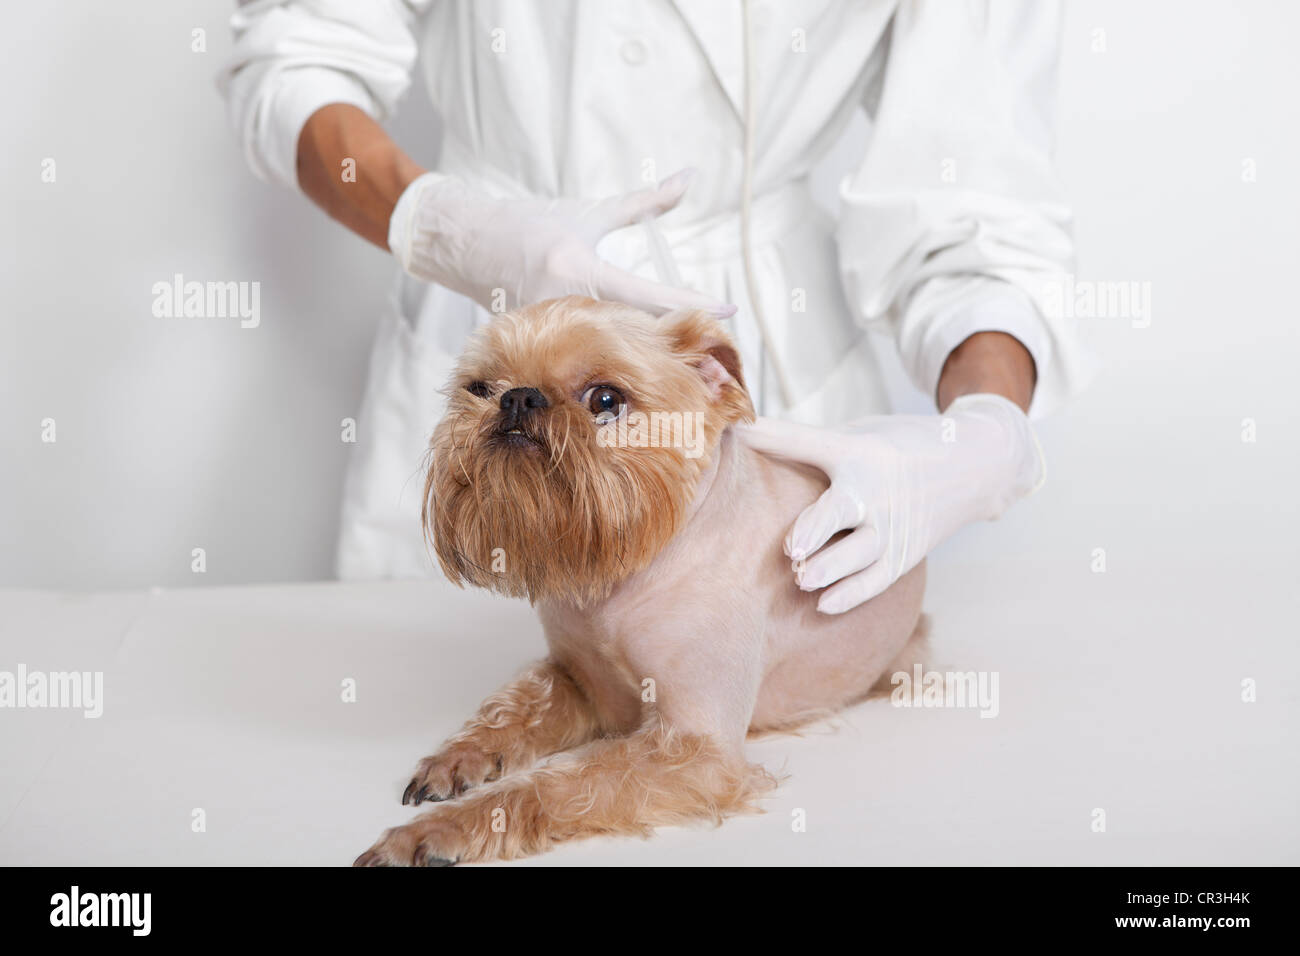 Veterinary doctor of doing an injection of dog breed Griffon Bruxellois - Stock Image